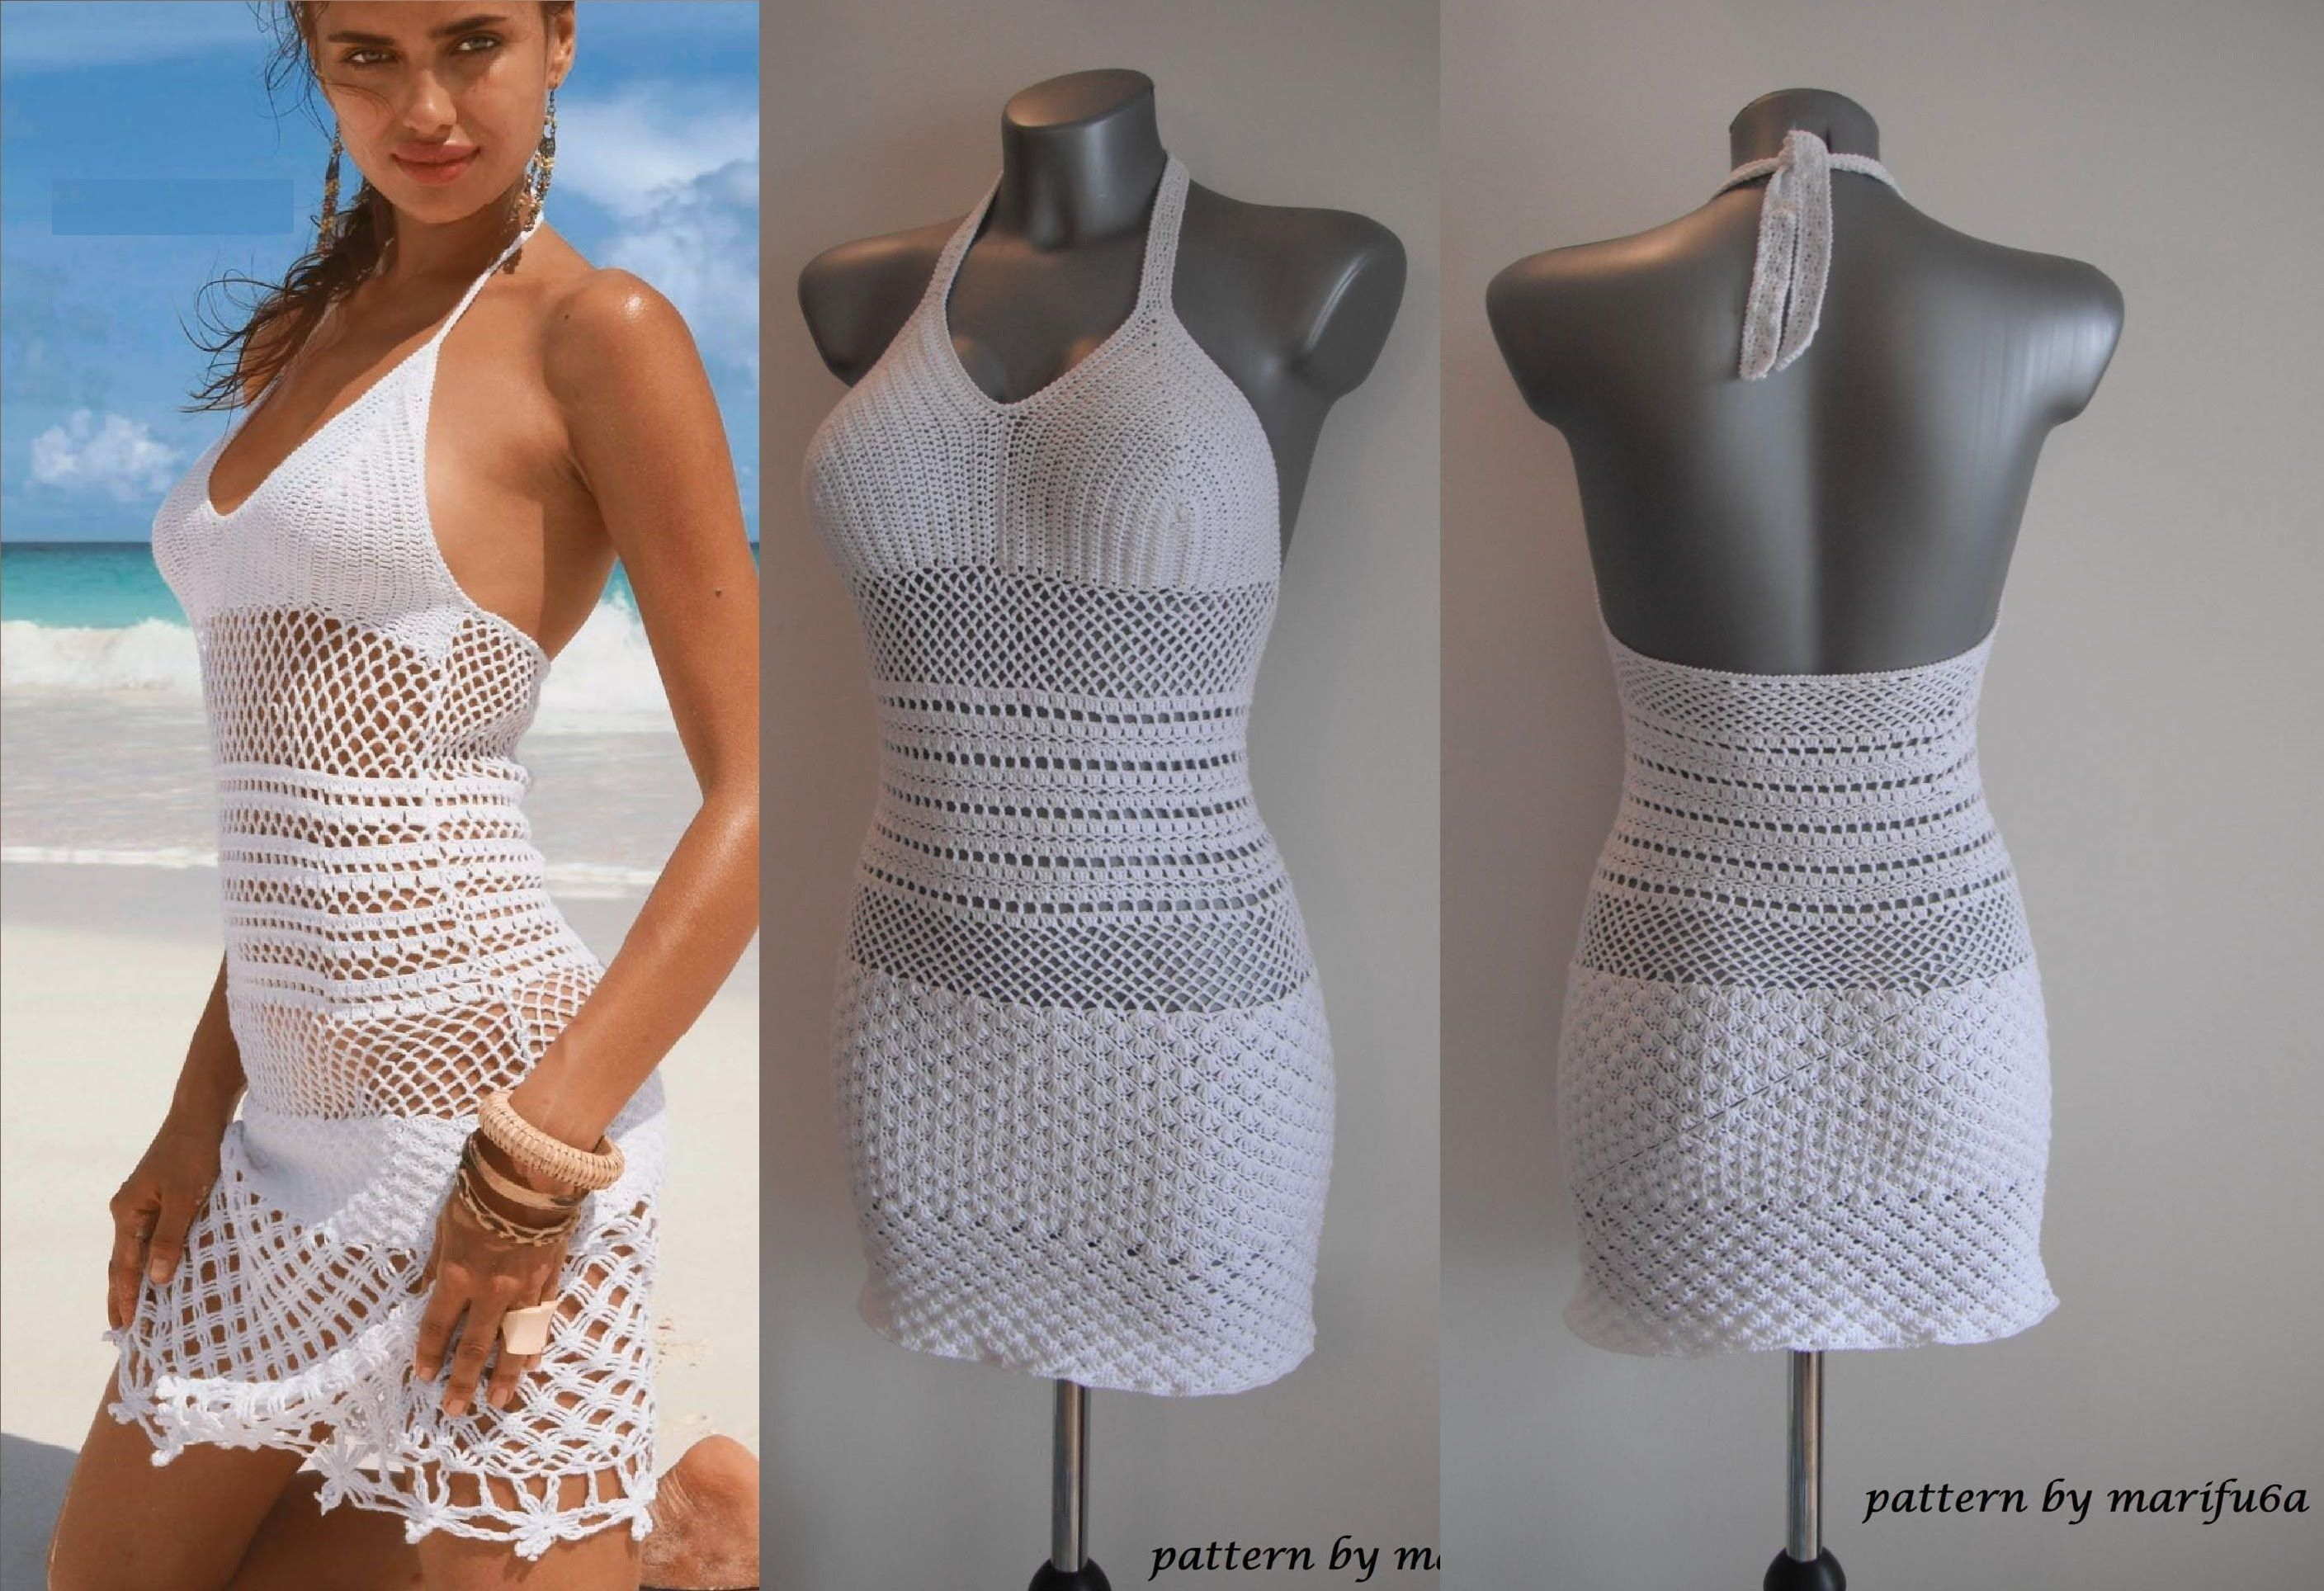 How To Crochet Summer Dress Free Stitch Pattern Tutorial By Marifu6a